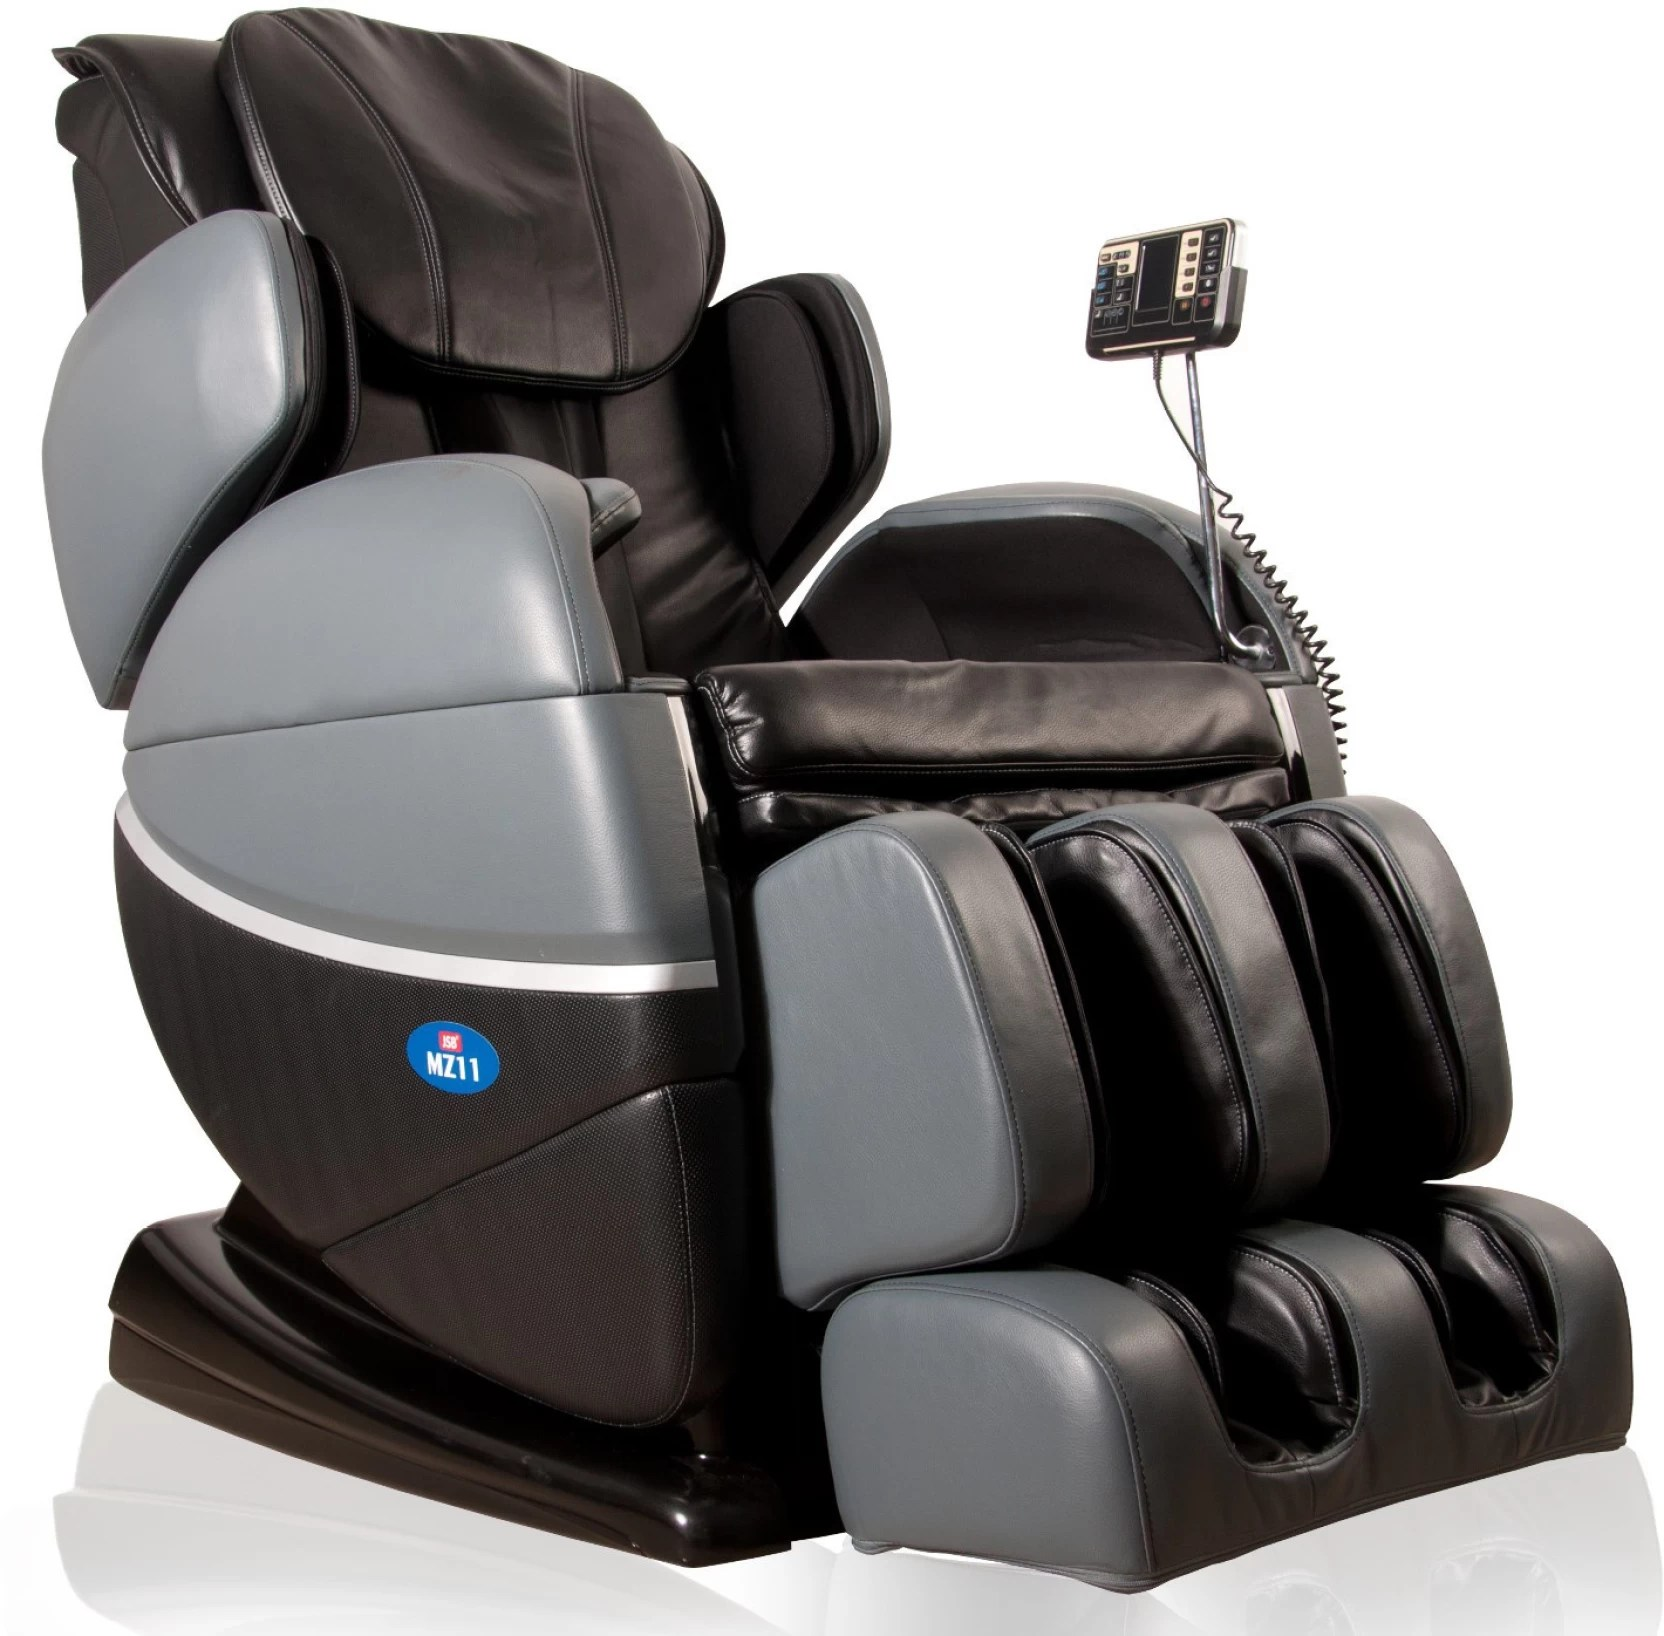 Massage Chair Cost Jsb Mz11 Full Body Massage Chair Recliner Massager Price